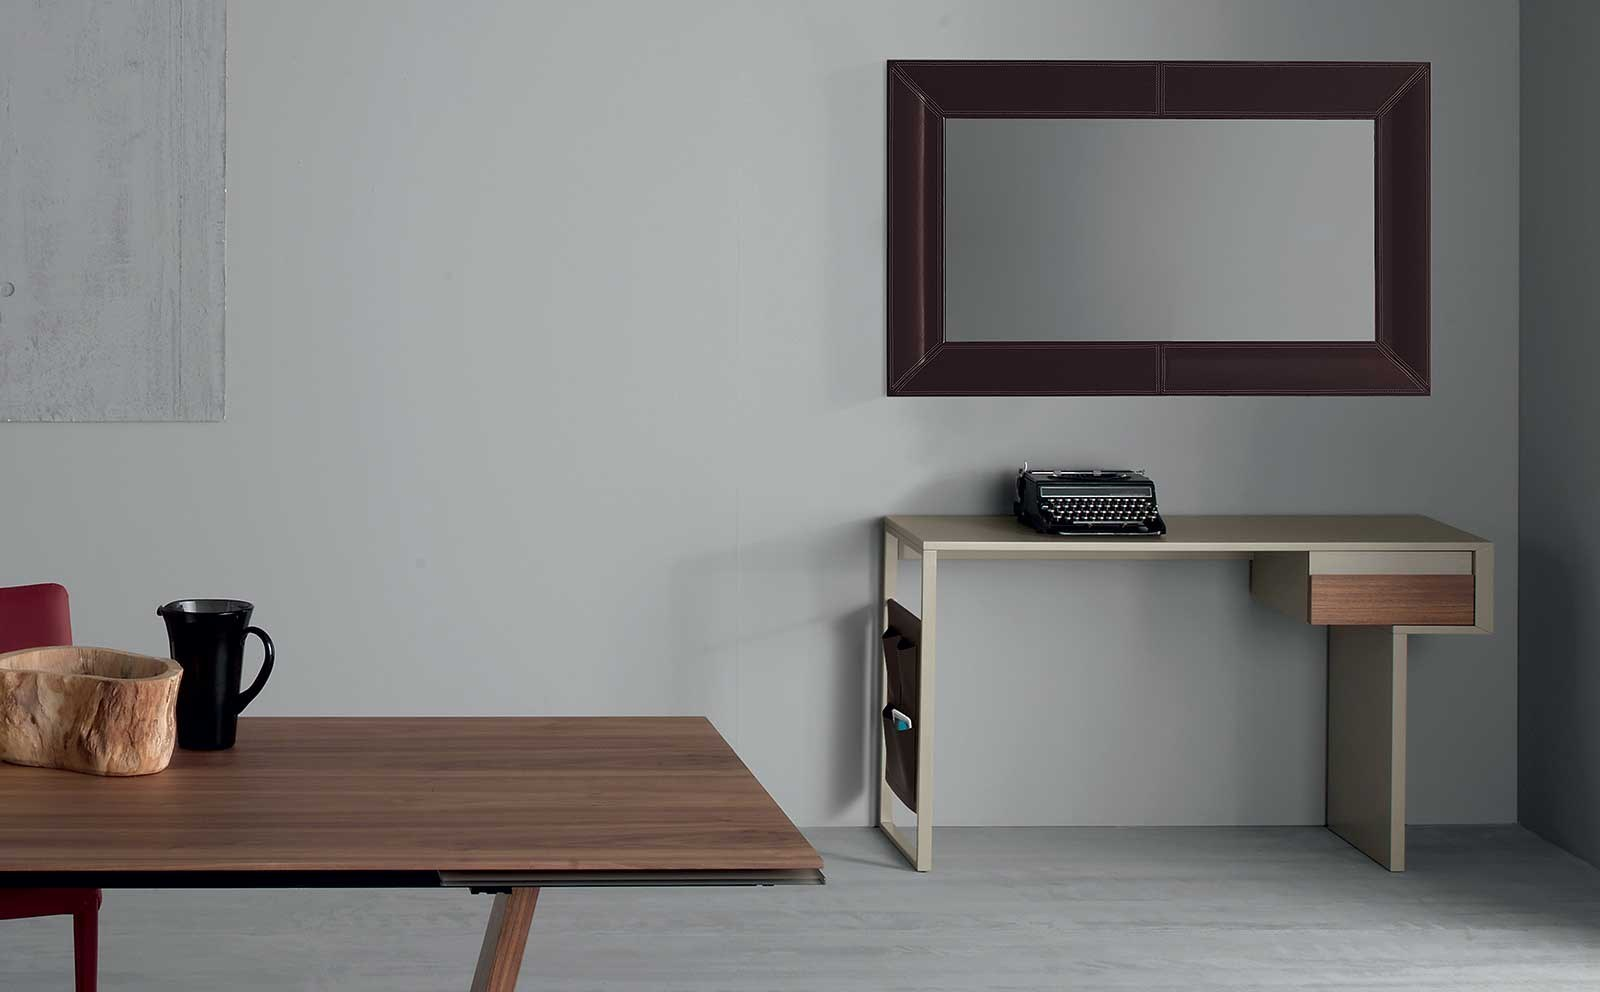 scrivania rettangolare in legno jak scrittoio by italy dream design kallist. Black Bedroom Furniture Sets. Home Design Ideas